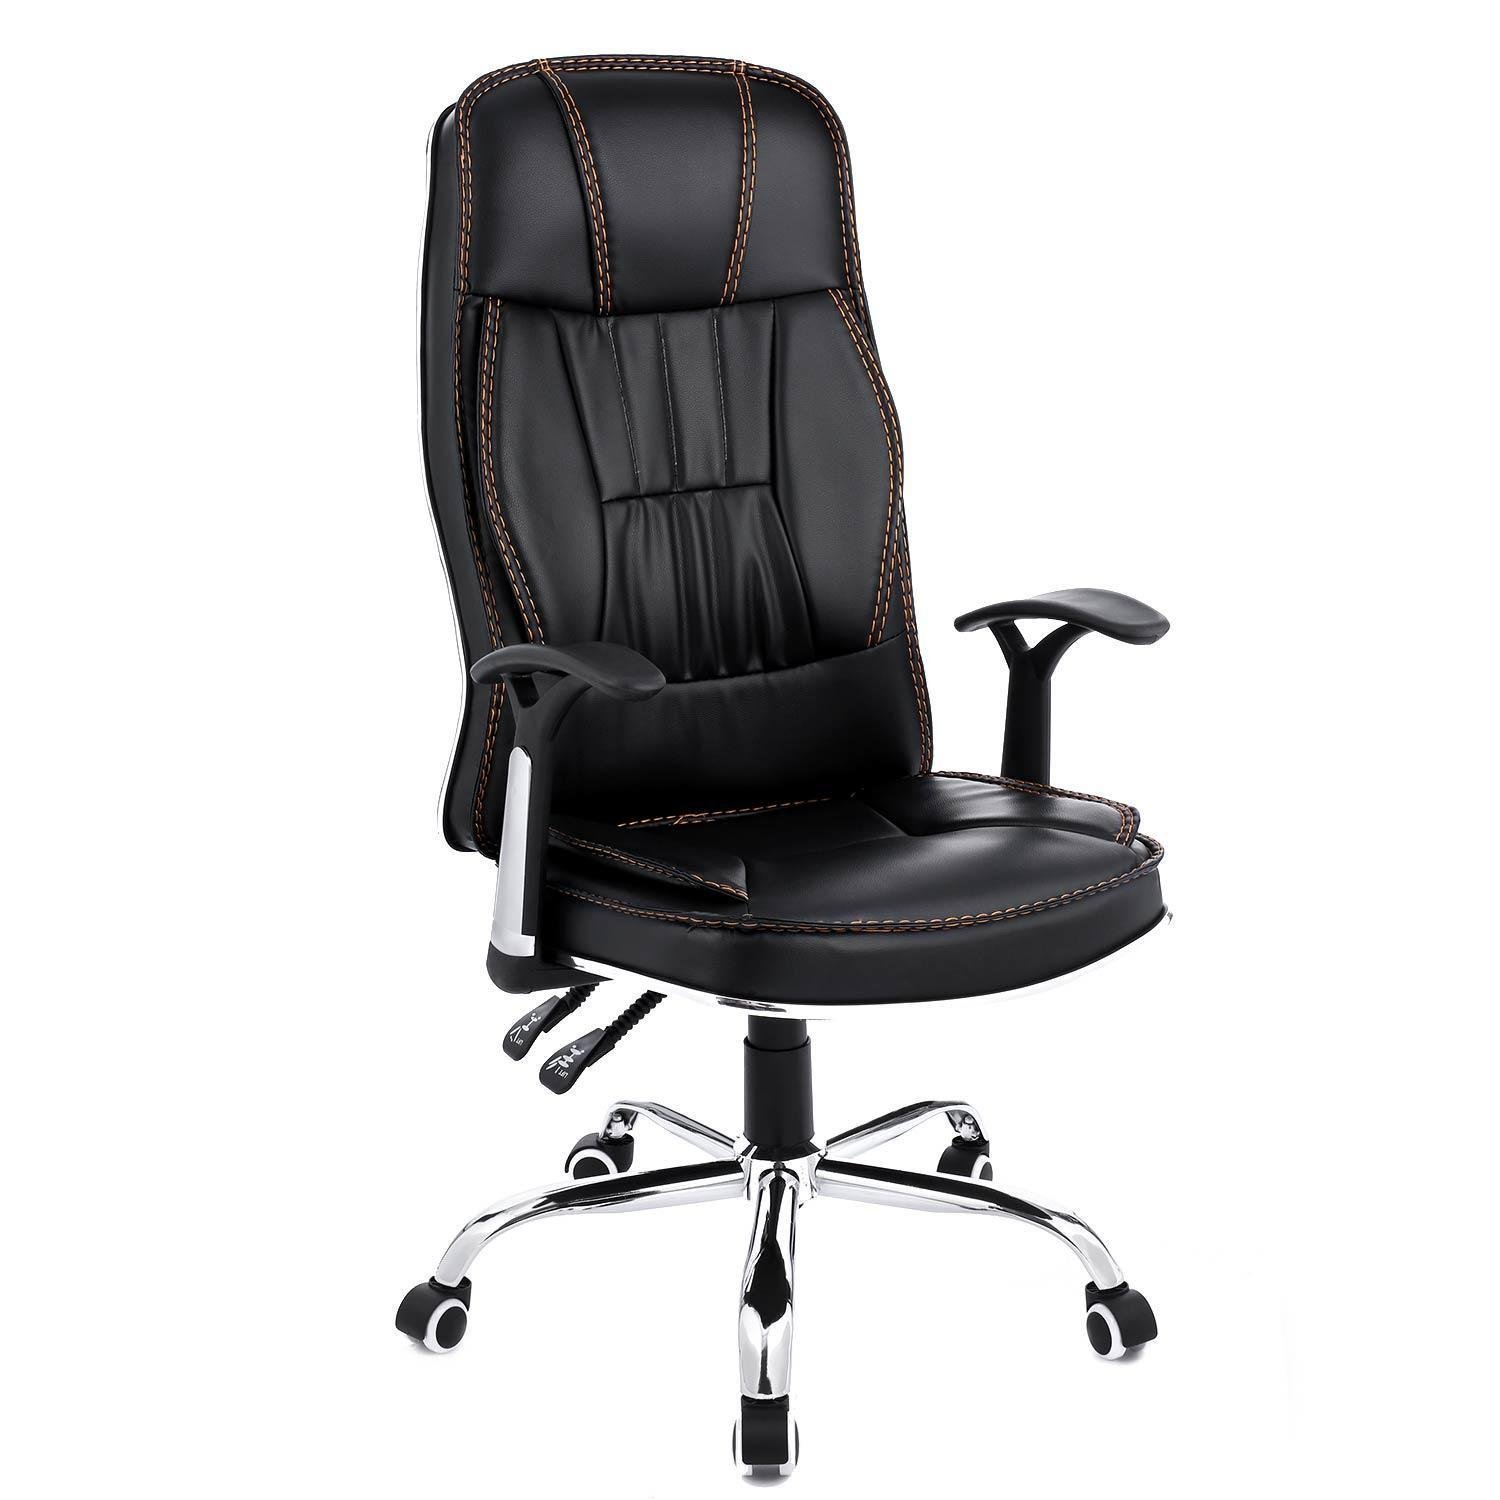 office chair supports 300 lbs eames accessories 10 big and tall chairs for extra large comfort